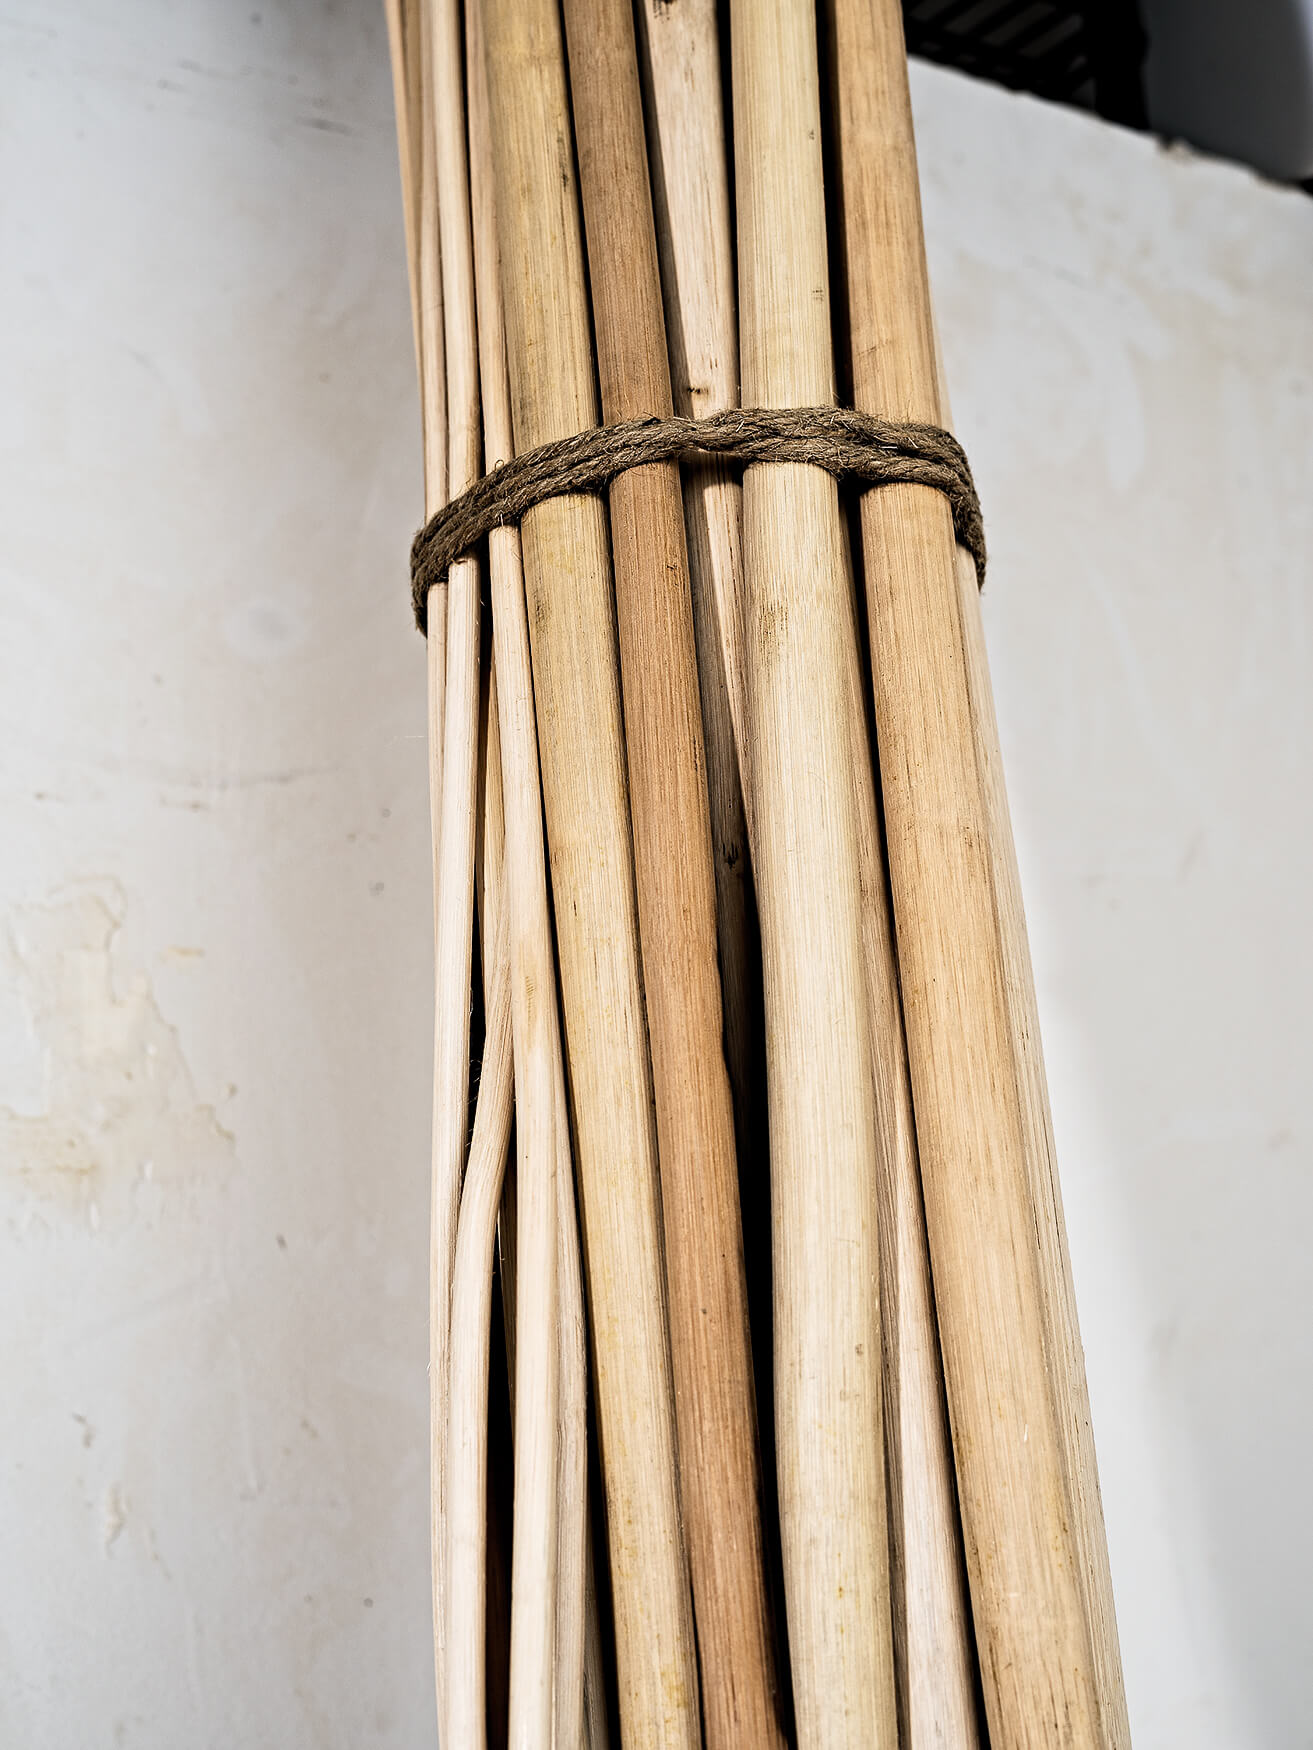 Pieces of Rattan